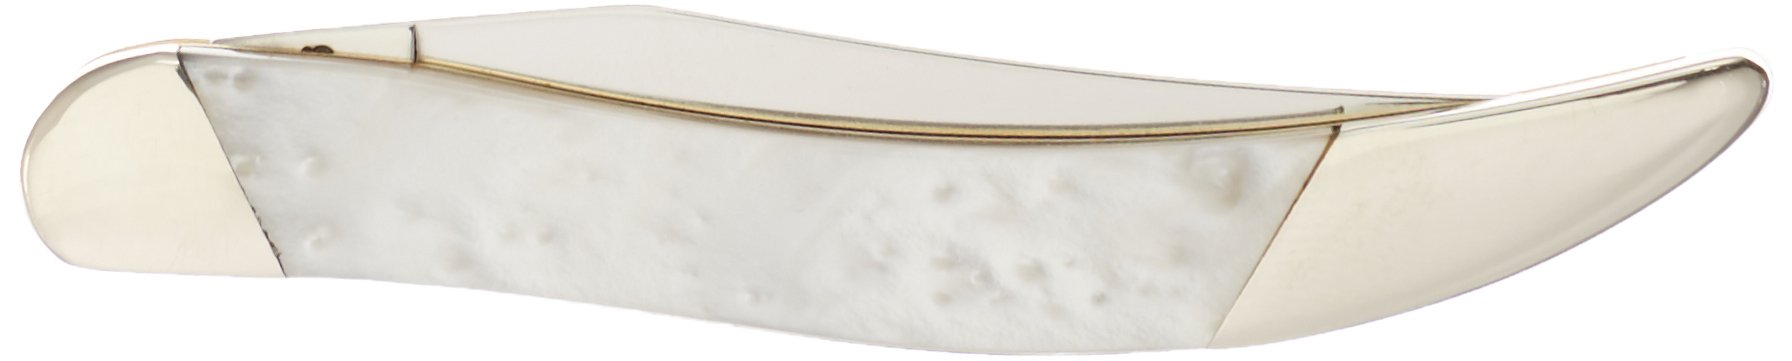 Case Cutlery S910096WP Slant Bolster Texas Toothpick Pocket Knife, Small, White Pearl